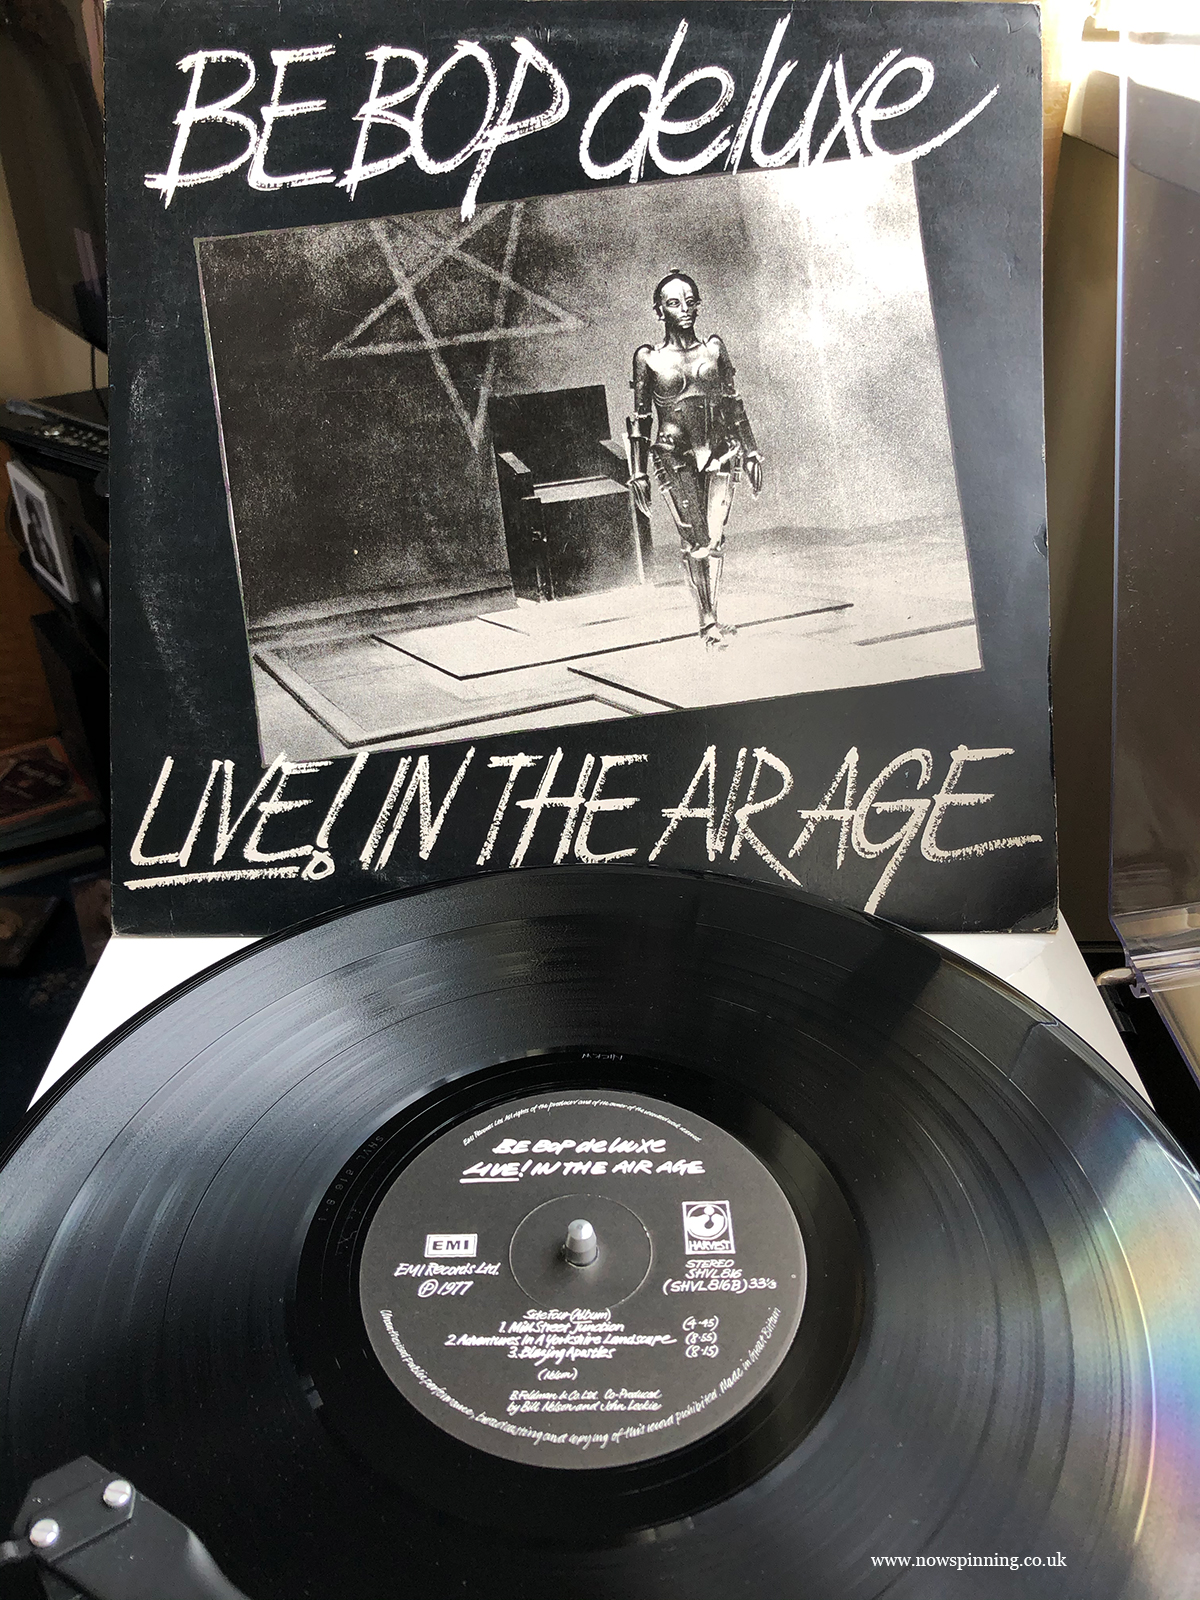 Be Bop Deluxe Live in the air age vinyl album